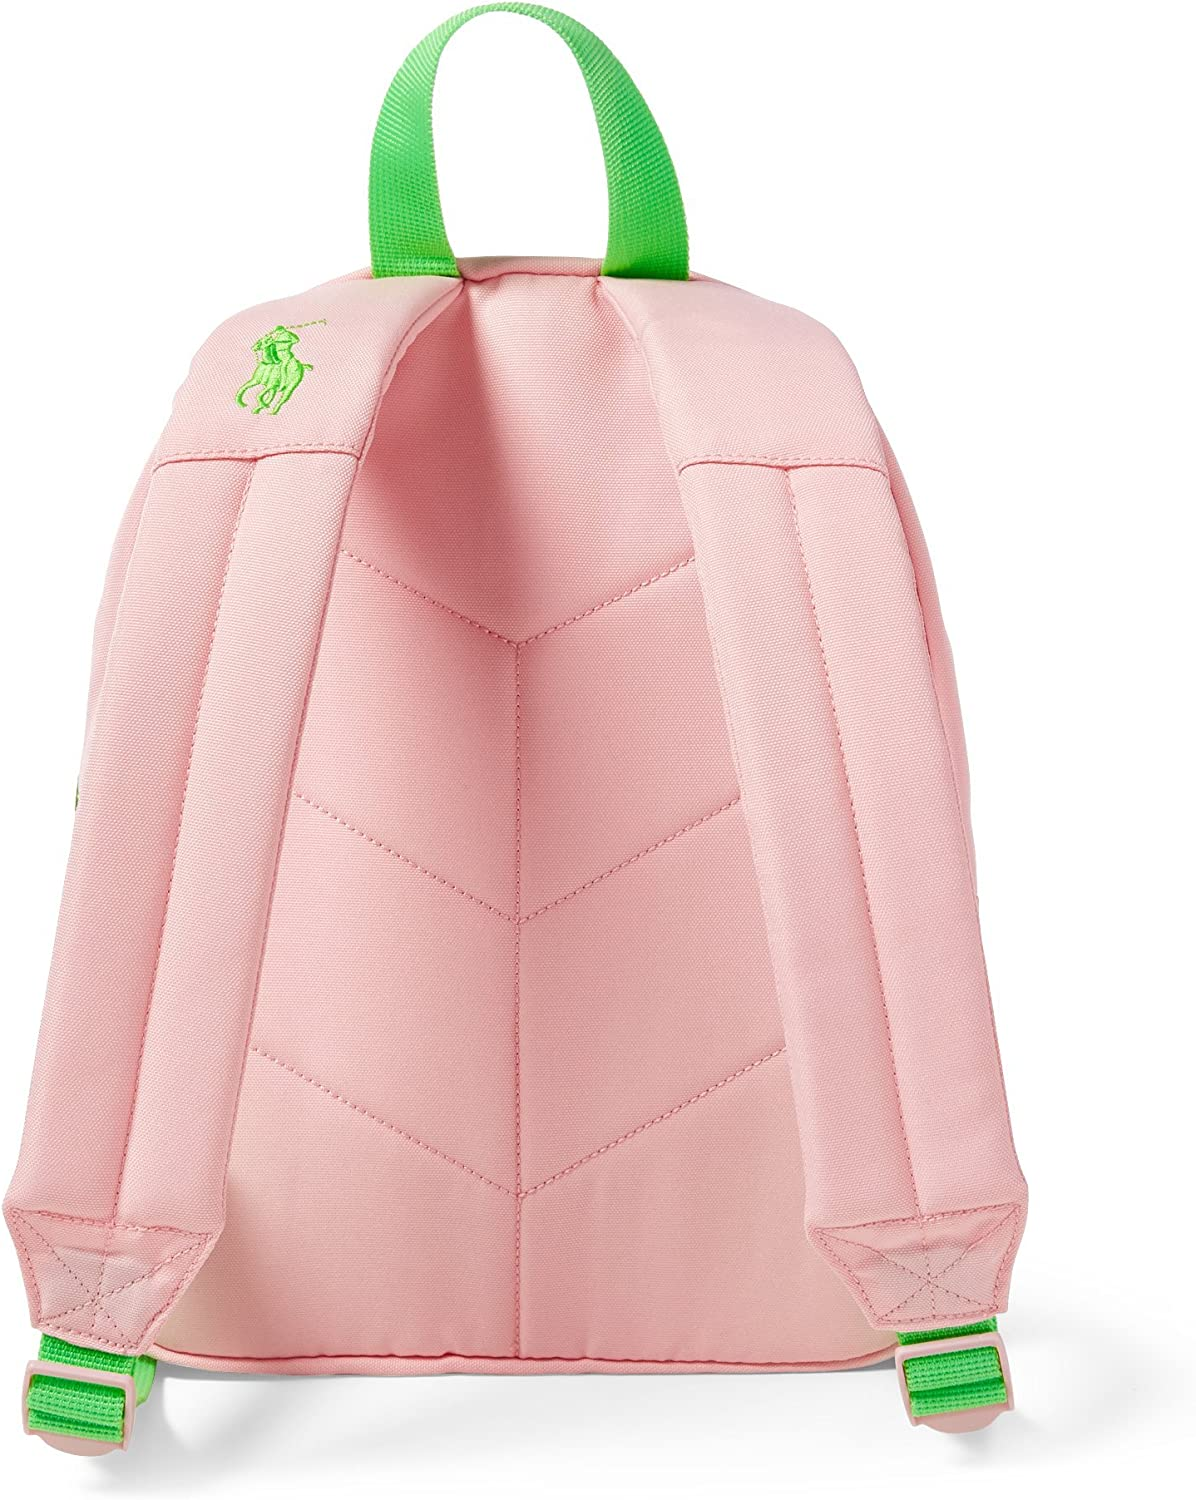 Ralph Lauren Polo Turtle - Mochila escolar: Amazon.es: Zapatos y ...